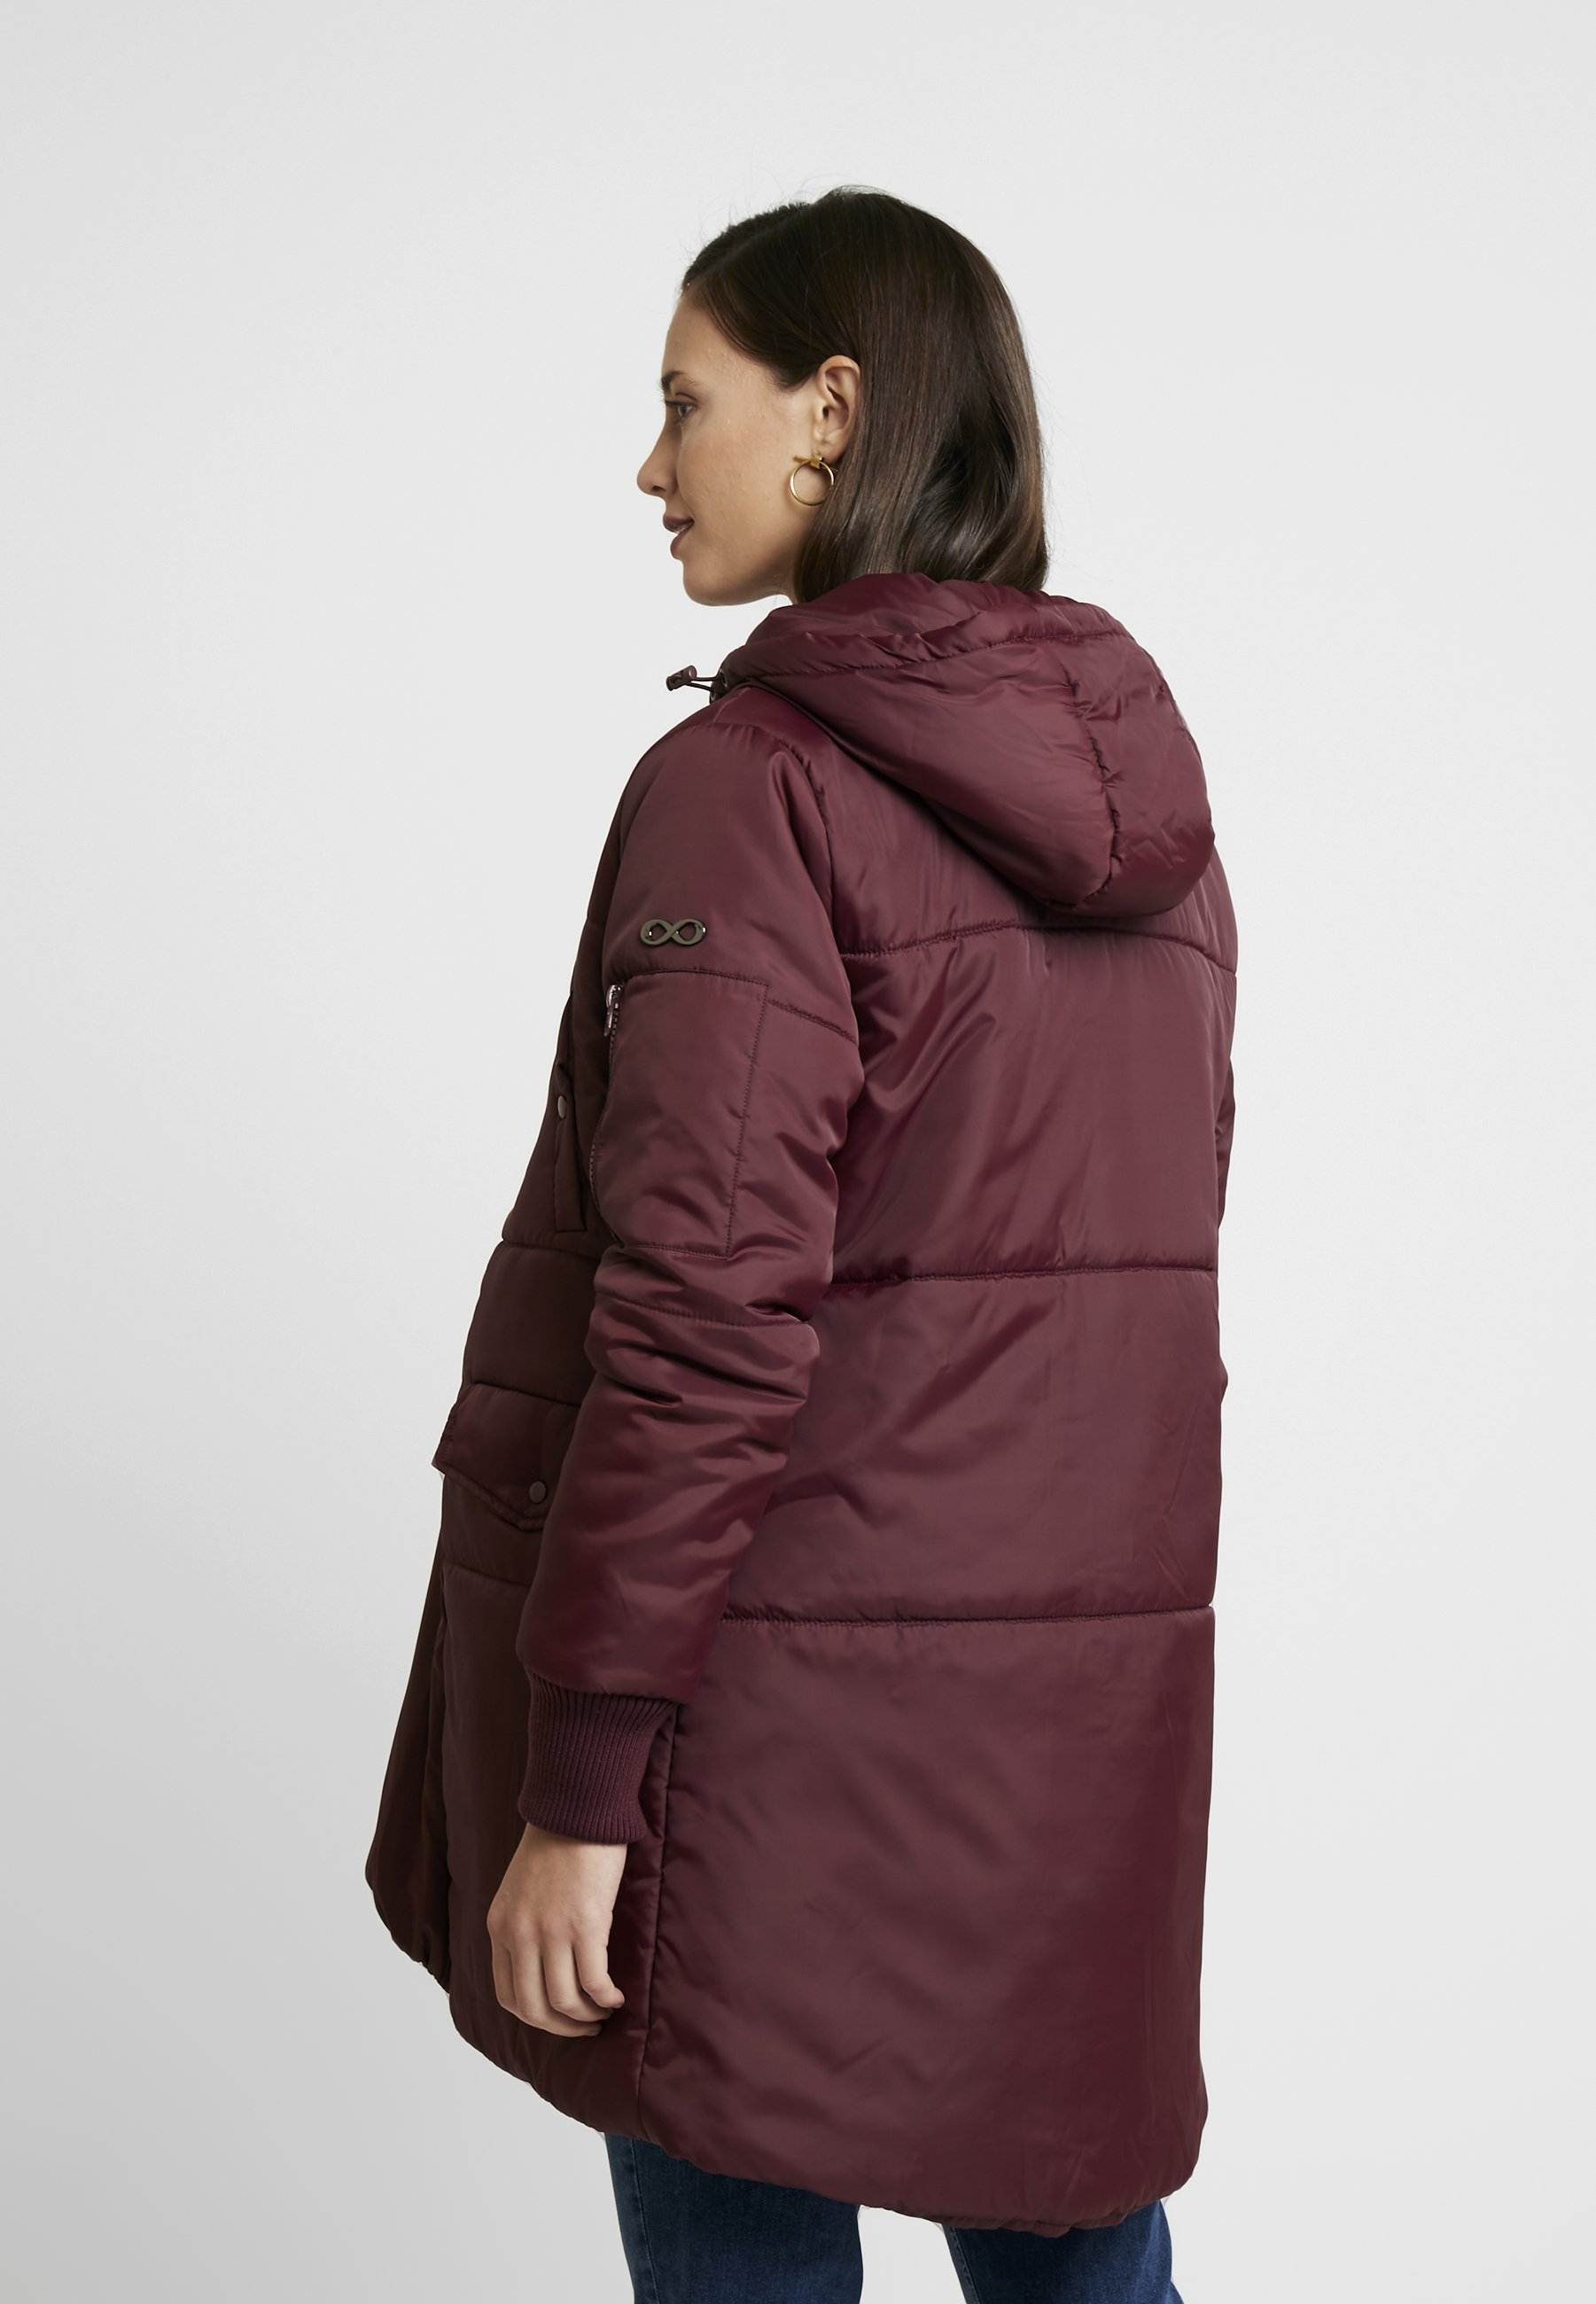 Cost Wholesale Modern Eternity FAITH 3-IN-1 THIGH BOMBER PUFFER COAT - Winter coat - burgandy | women's clothing 2020 iqKHB